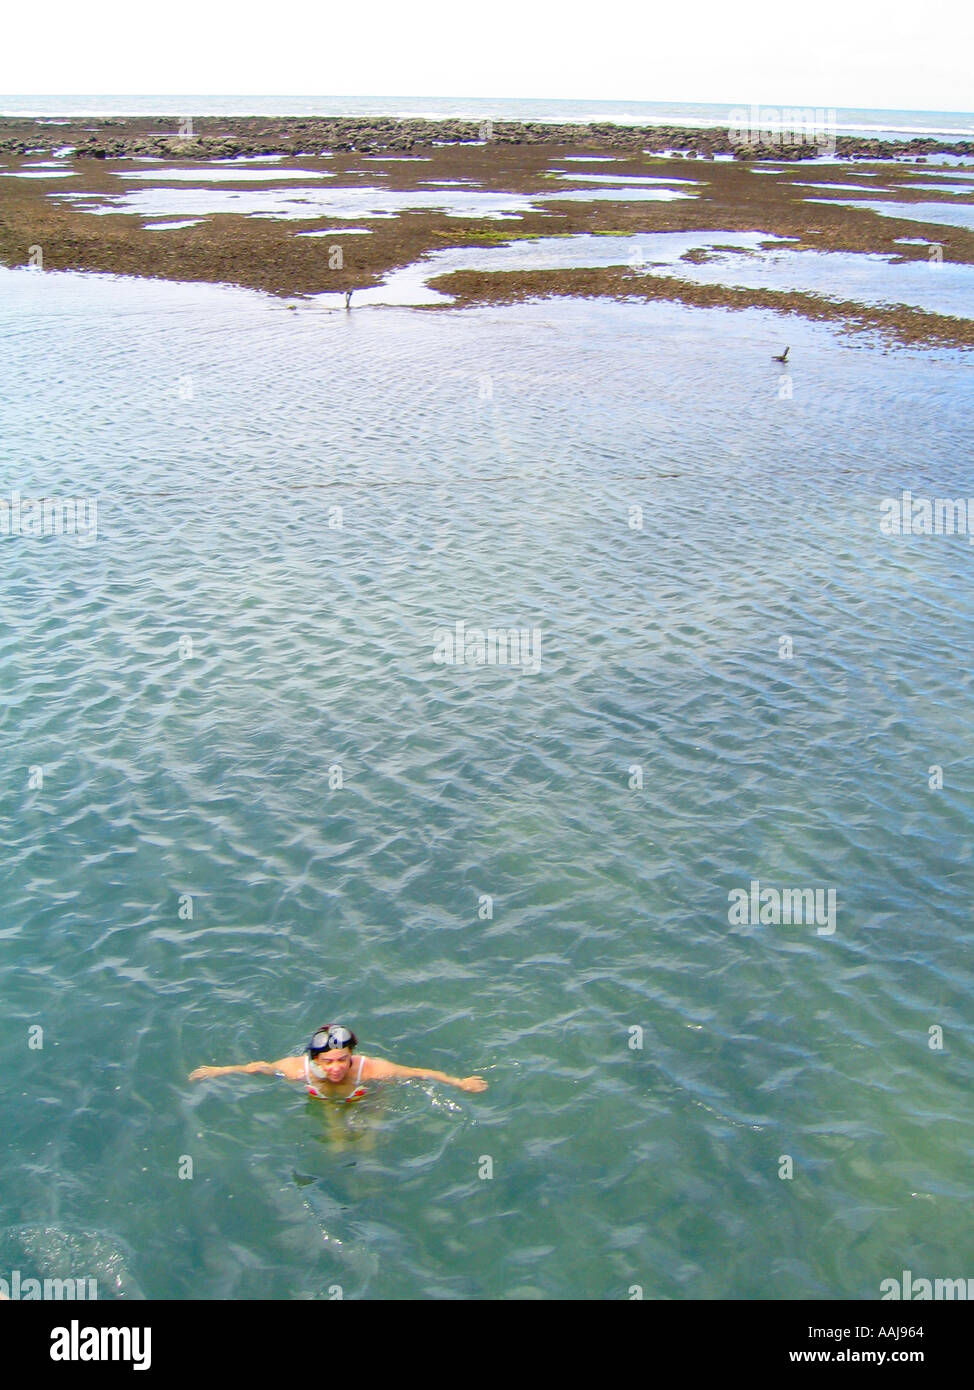 Snorkelling at the ocean pools of Passeio de Barco close to Pirangi south of Natal, Brazil. - Stock Image